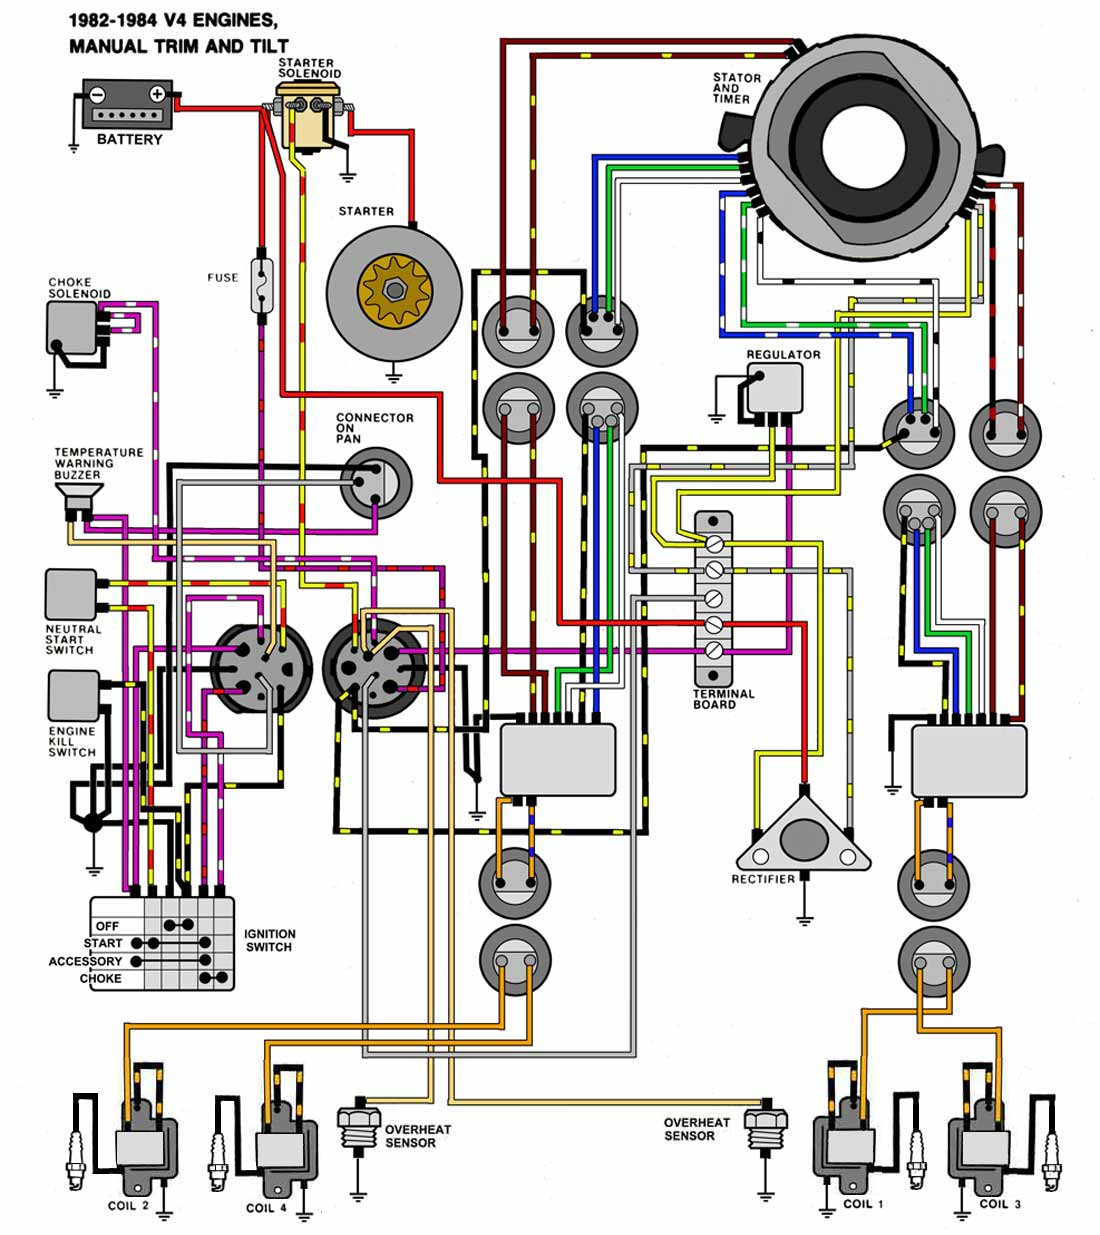 82_84_V4_NOTNT mastertech marine evinrude johnson outboard wiring diagrams evinrude key switch wiring diagram at honlapkeszites.co